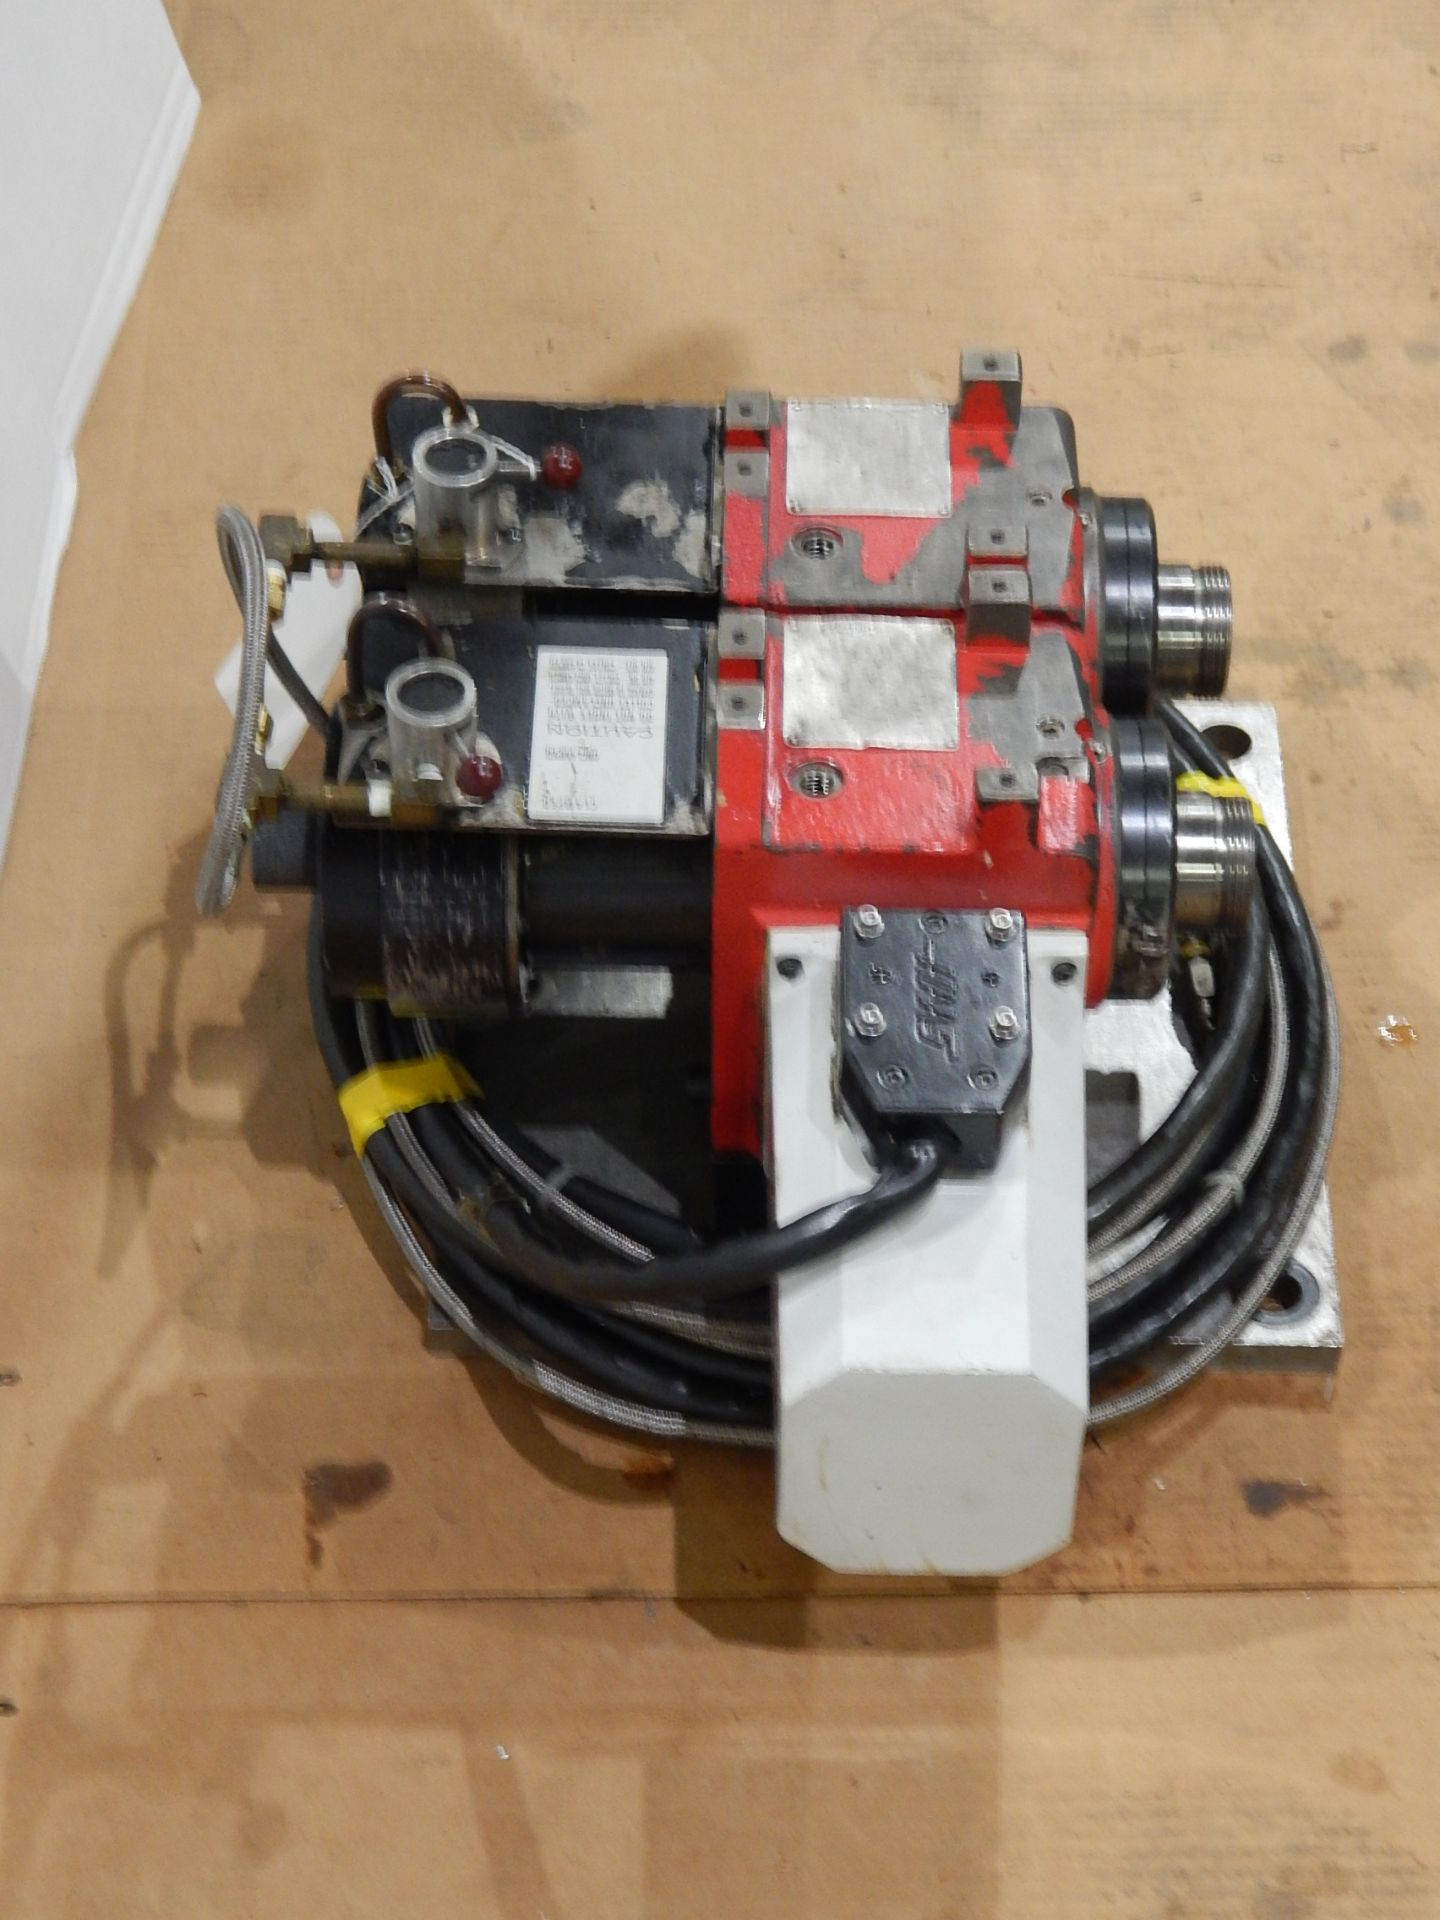 Haas HA5C-2 CNC Indexer, s/n 700130B, (2) 5C Programmable Spindles - Image 5 of 6